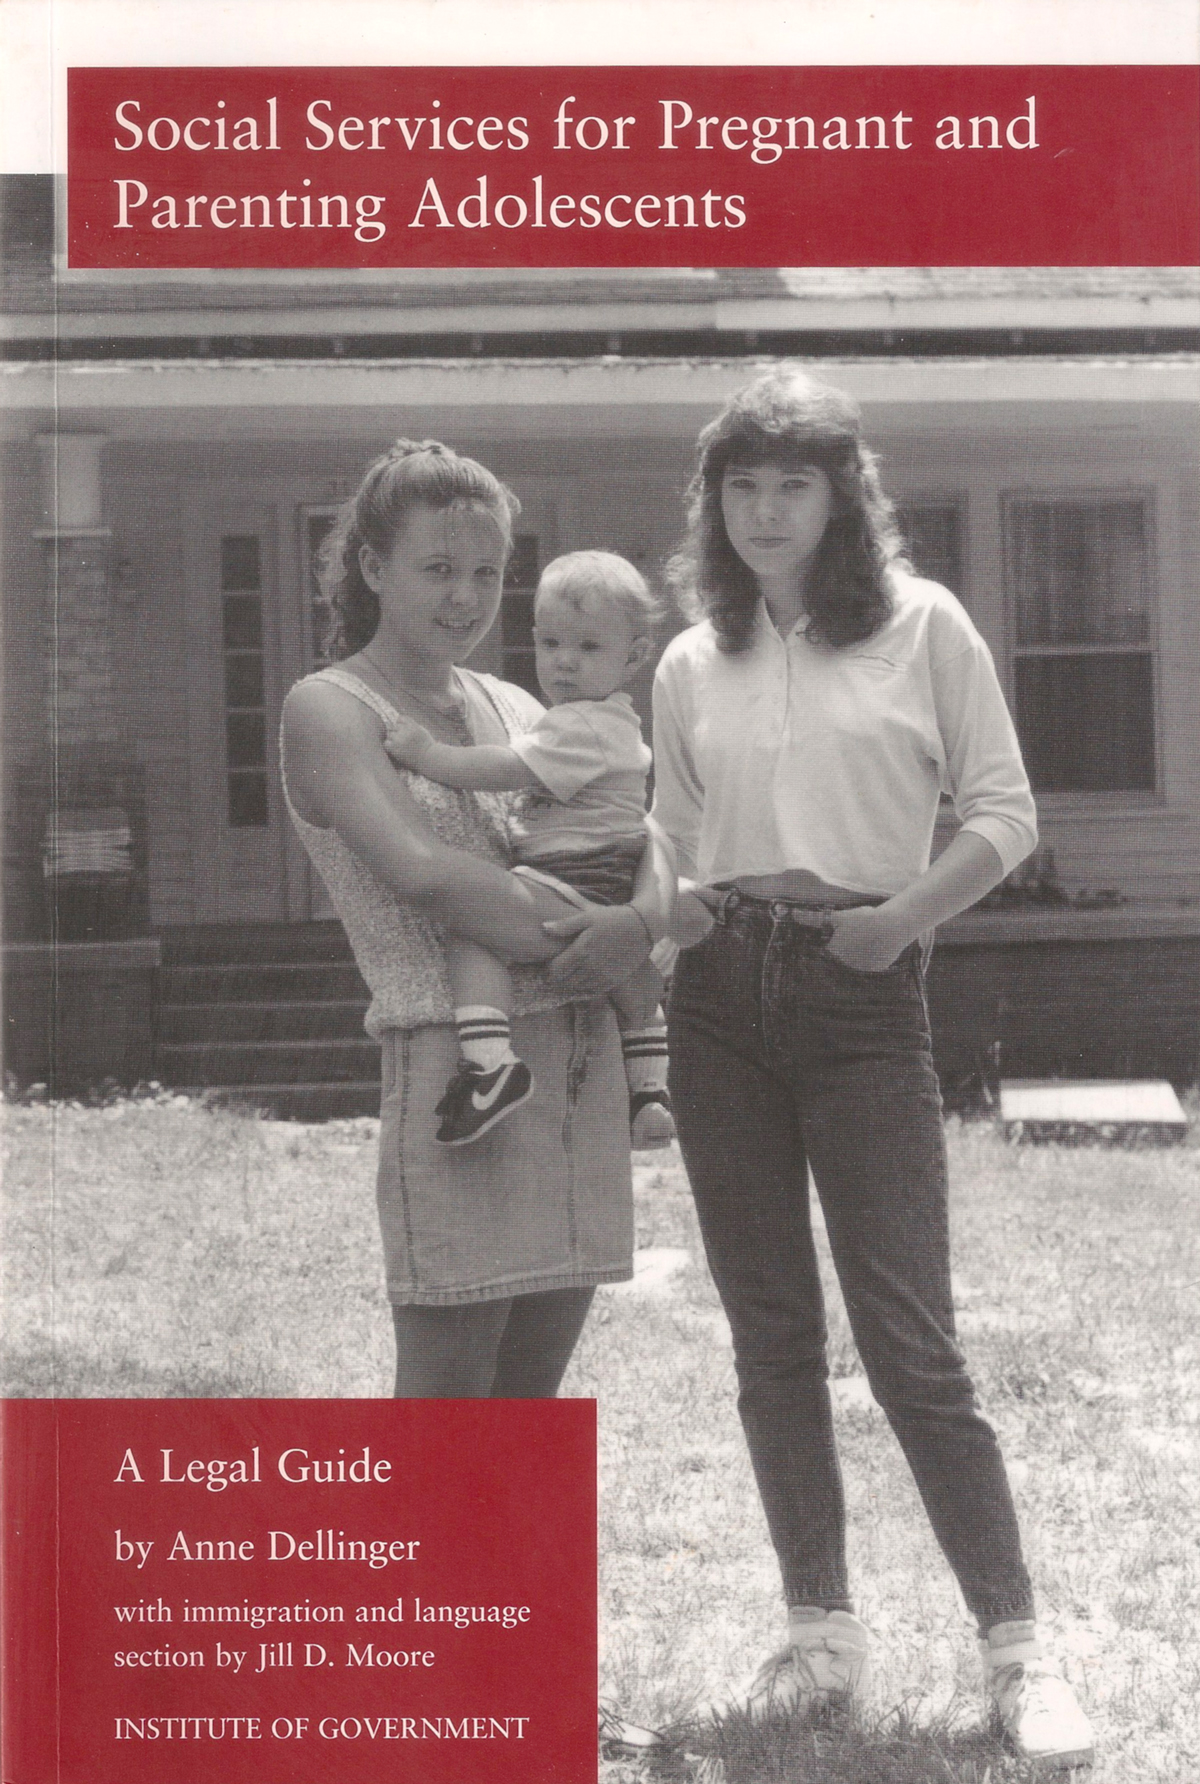 Cover Image For Social Services Pregnant And Parenting Adolescents A Legal Guide